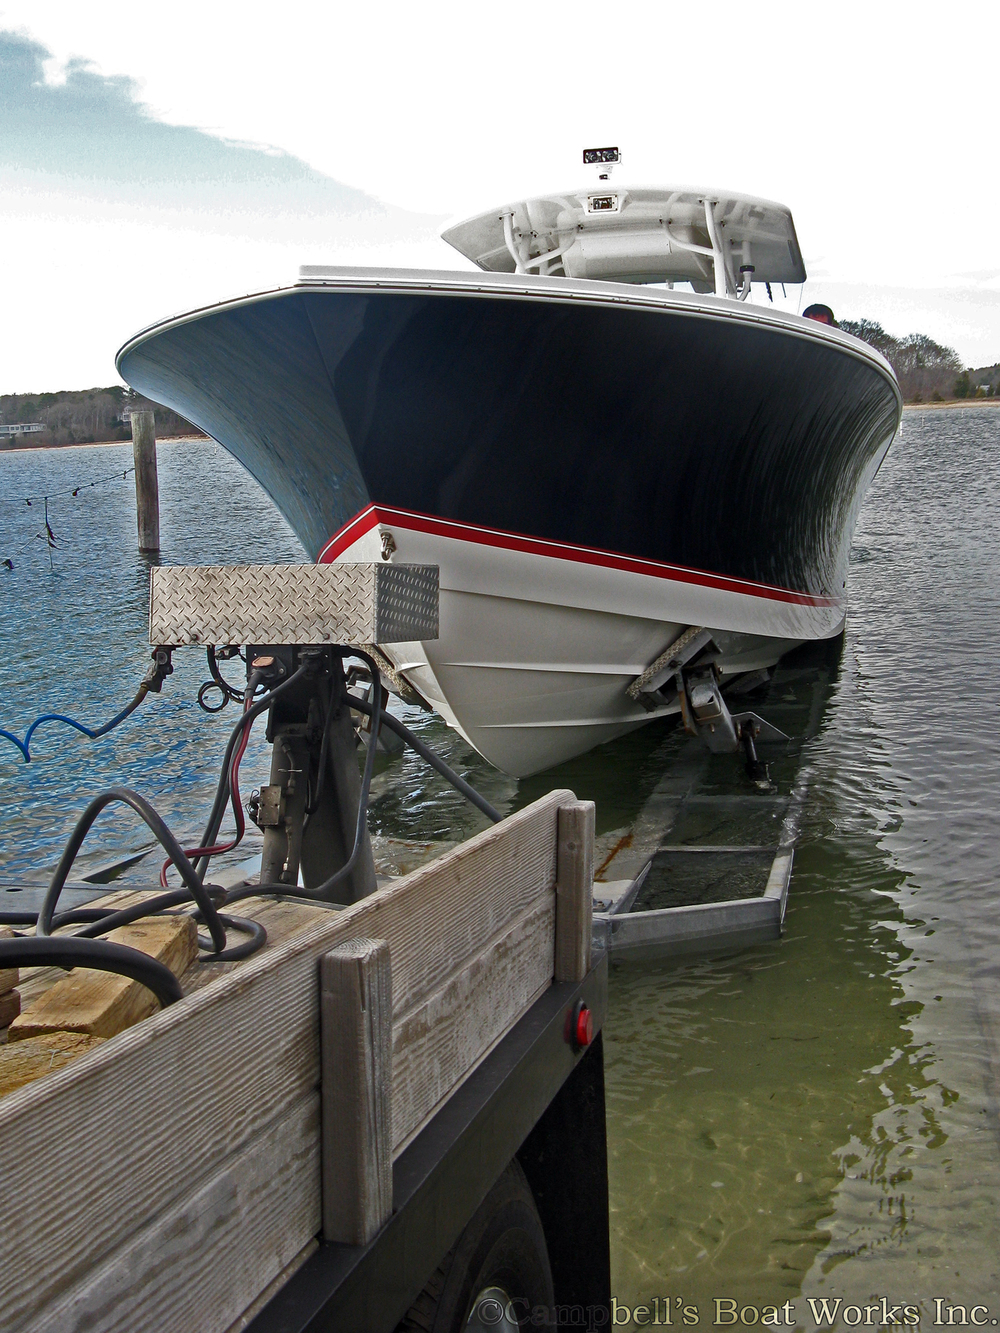 Boat Hauling Service Launching a Regulator in North Falmouth Mas